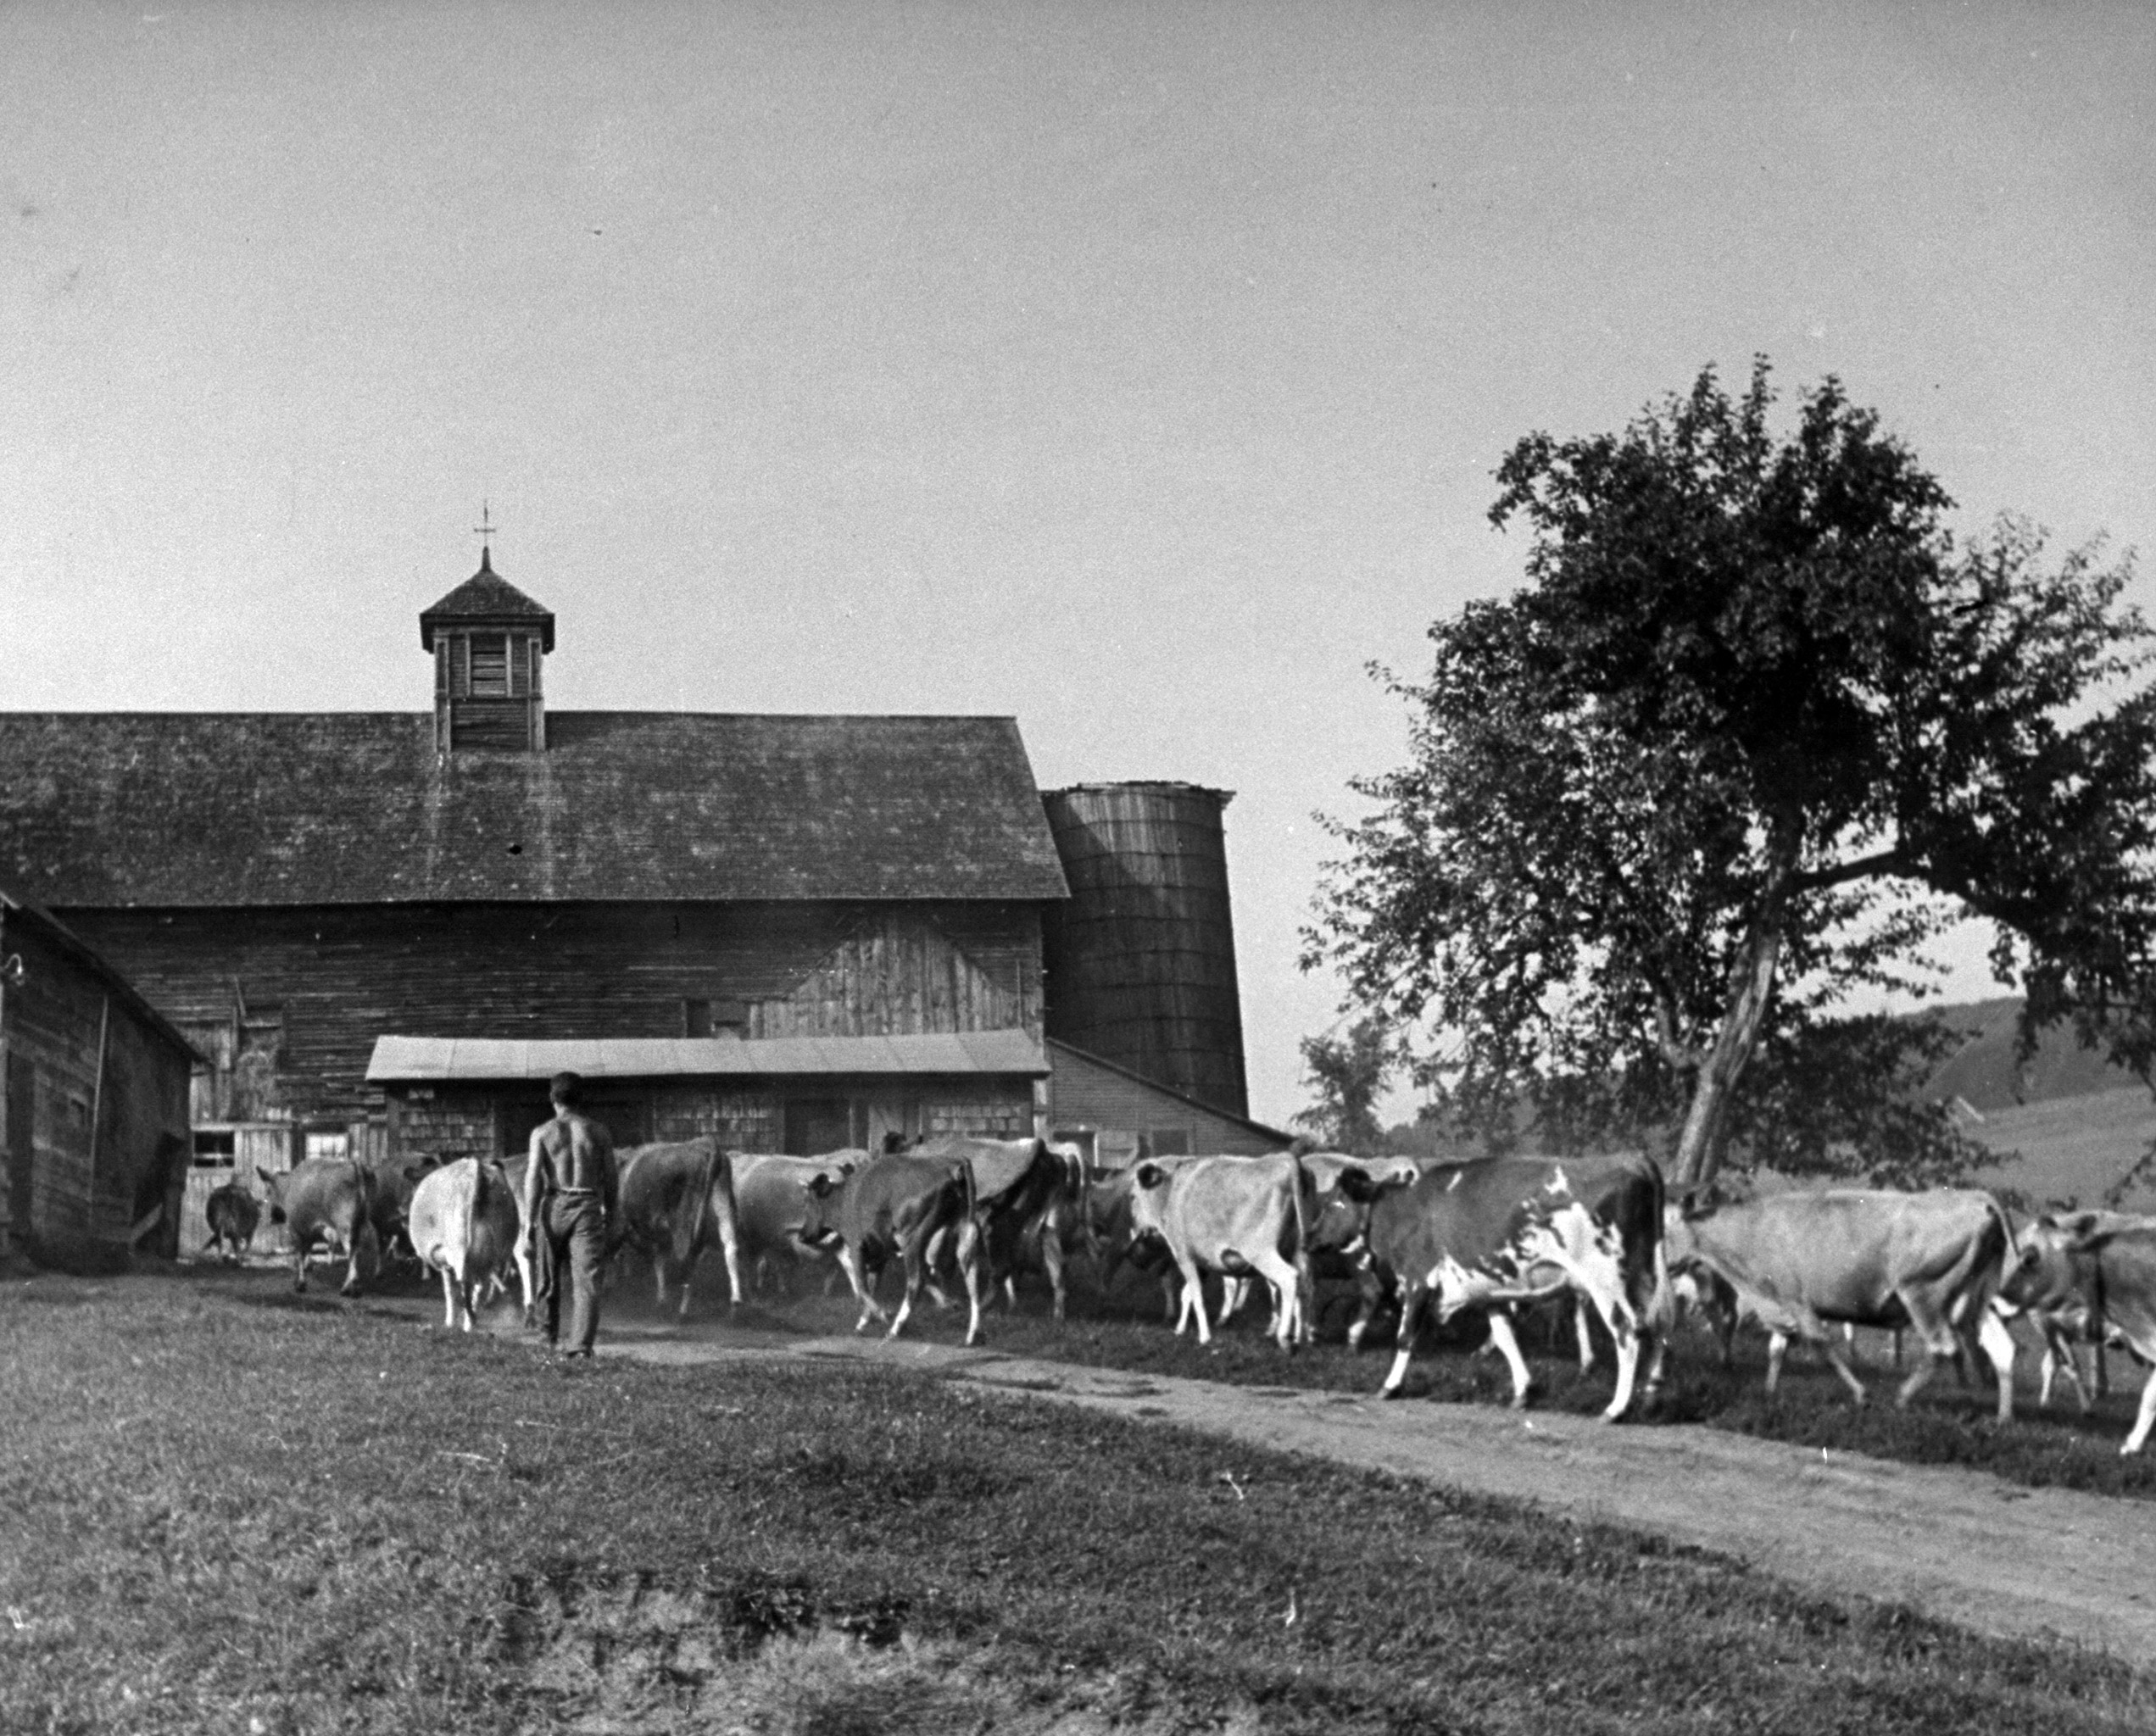 <b>Caption from LIFE.</b> Sleek cows on Edson farm near Windsor are guided to barn for milking by 22-year-old Murray Blackman of New York. Murray also pitched hay, cleaned the barn.